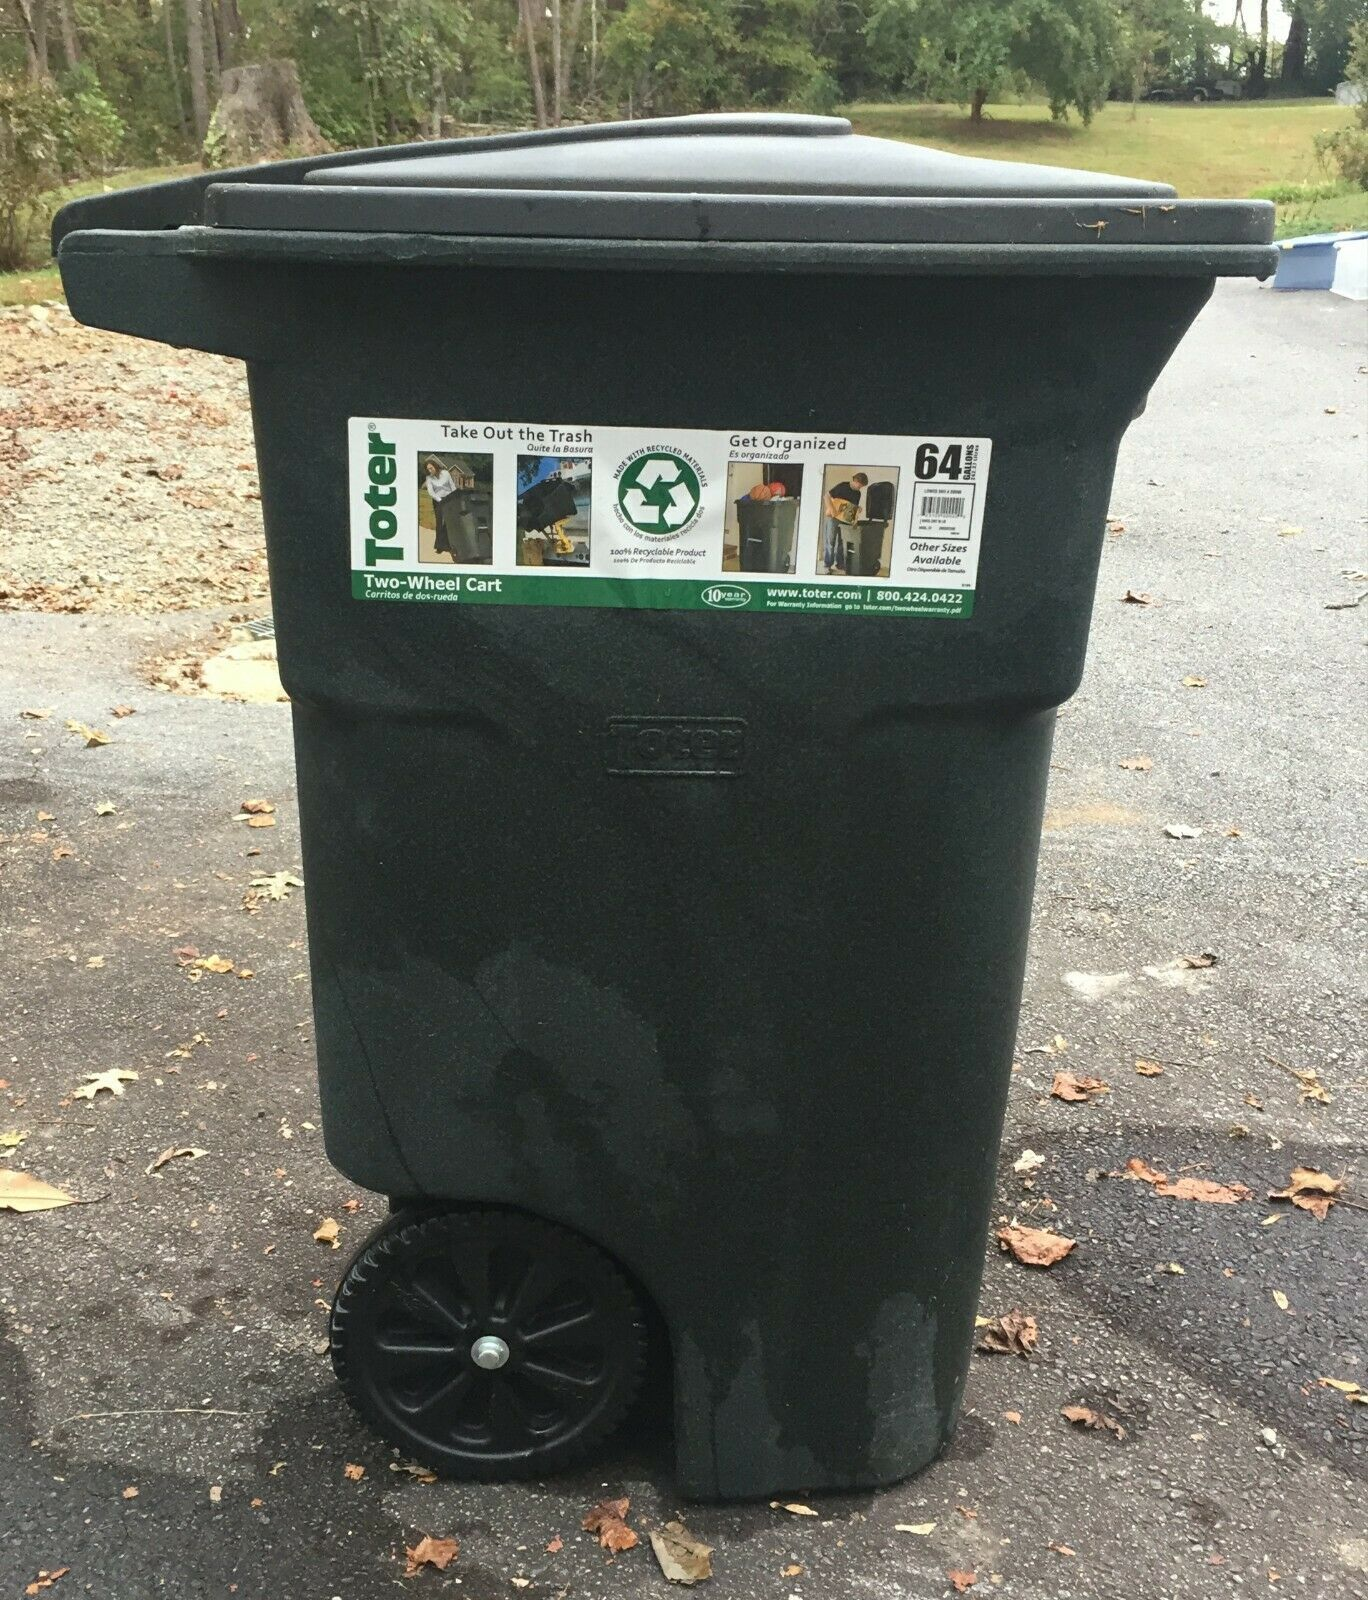 Garbage Can Garbage Can Ideas Garbage Can Garbagecan 64 Gallon Residential Curbside Trash Can Cart Rolling Garba Garbage Can Garbage Bin Garbage